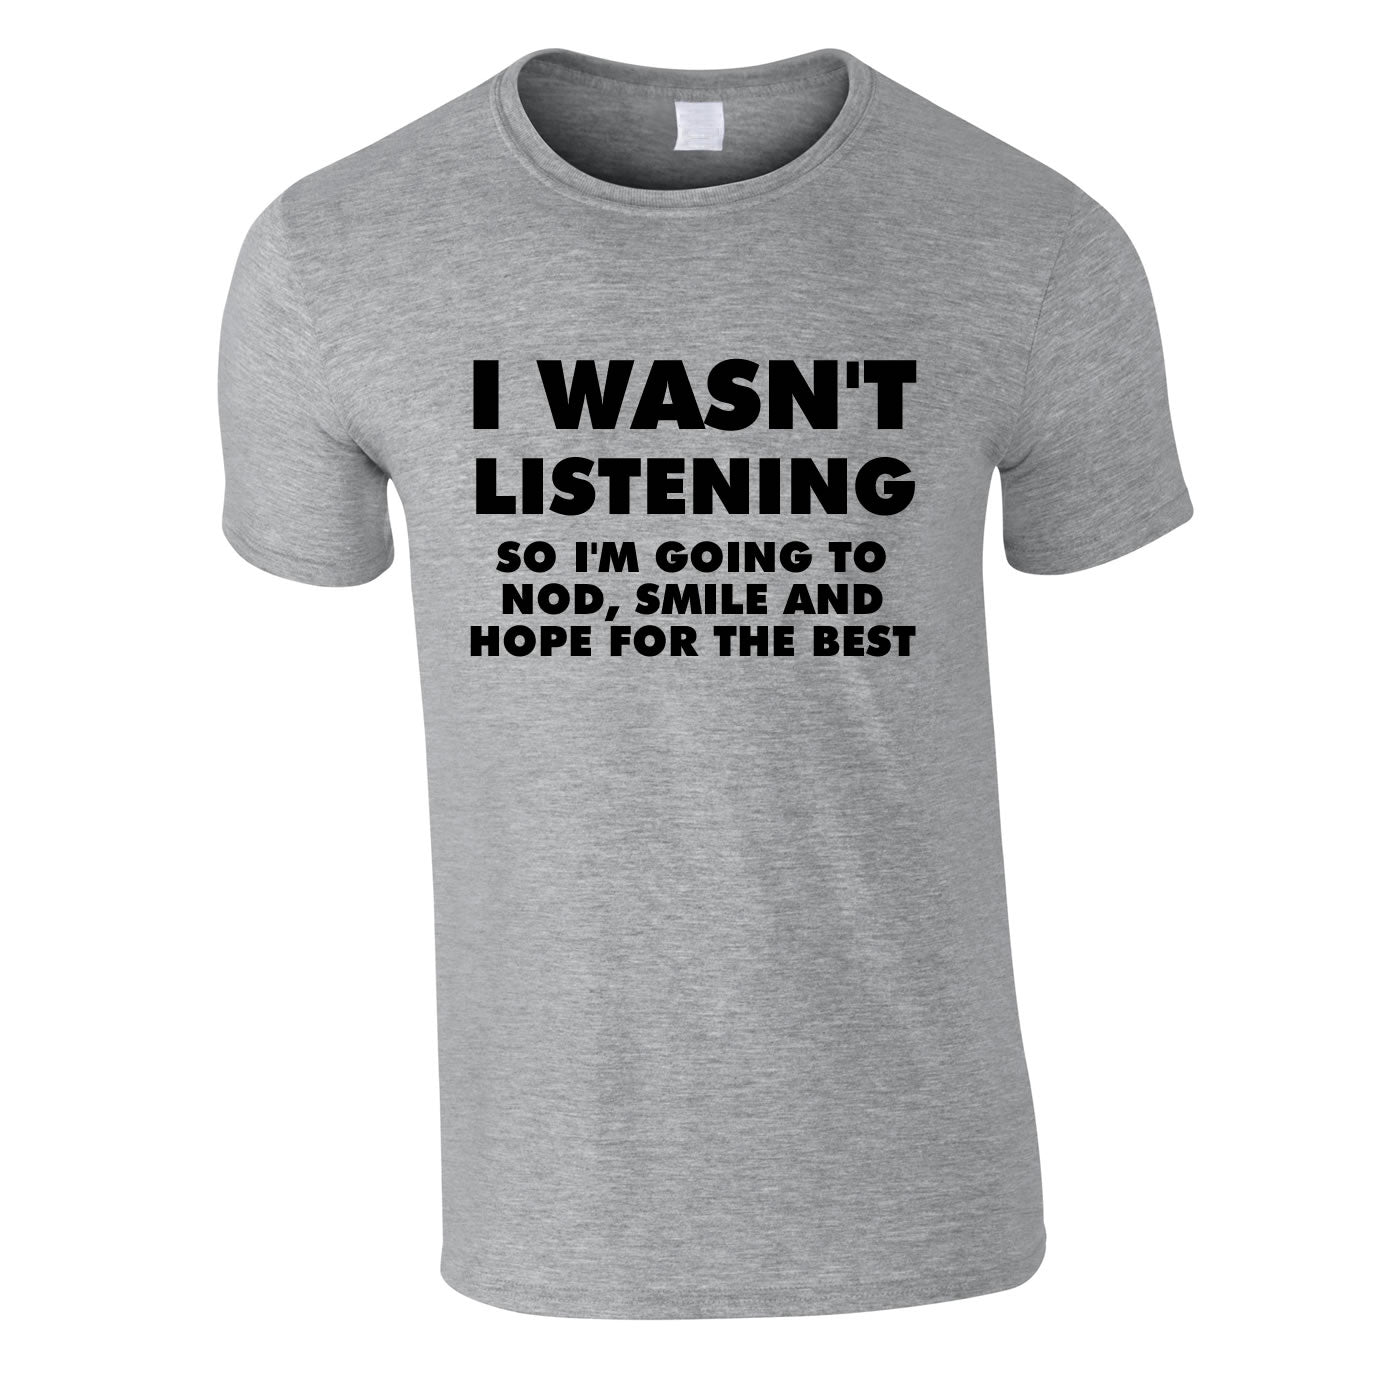 I Wasn't Listening, So I'm Going To Smile, Nod And Hope For The Best T Shirt